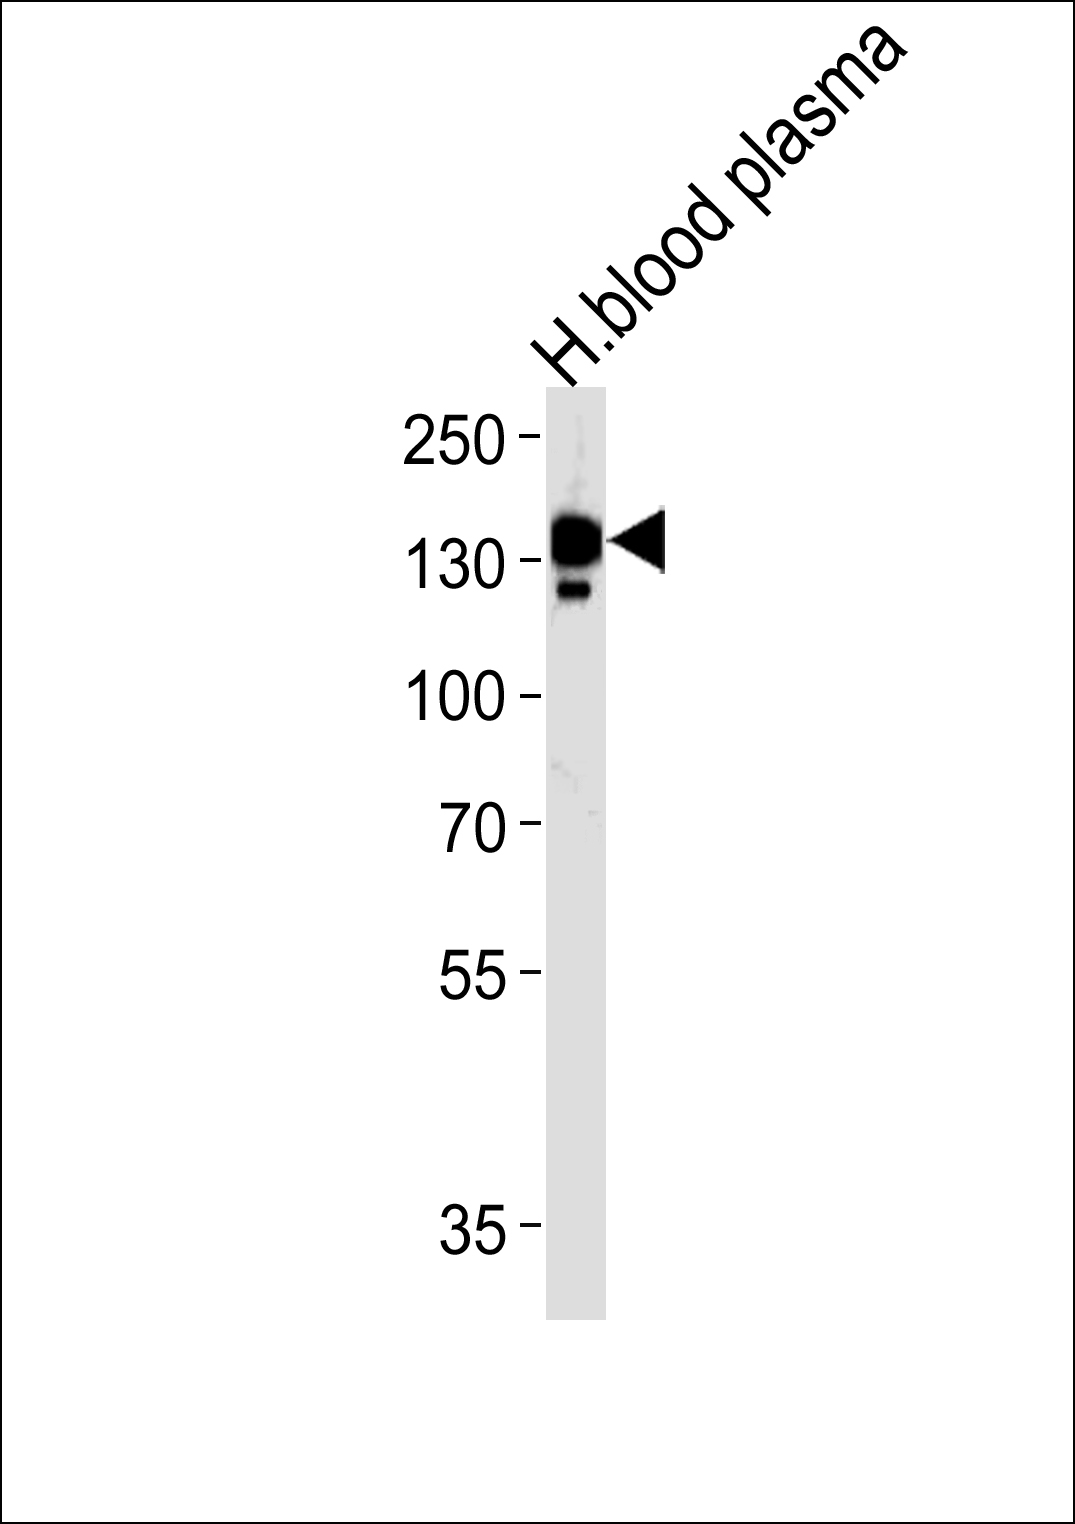 CP Antibody western blot of human blood plasma tissue lysates (35 ug/lane). The CP antibody detected the CP protein (arrow).